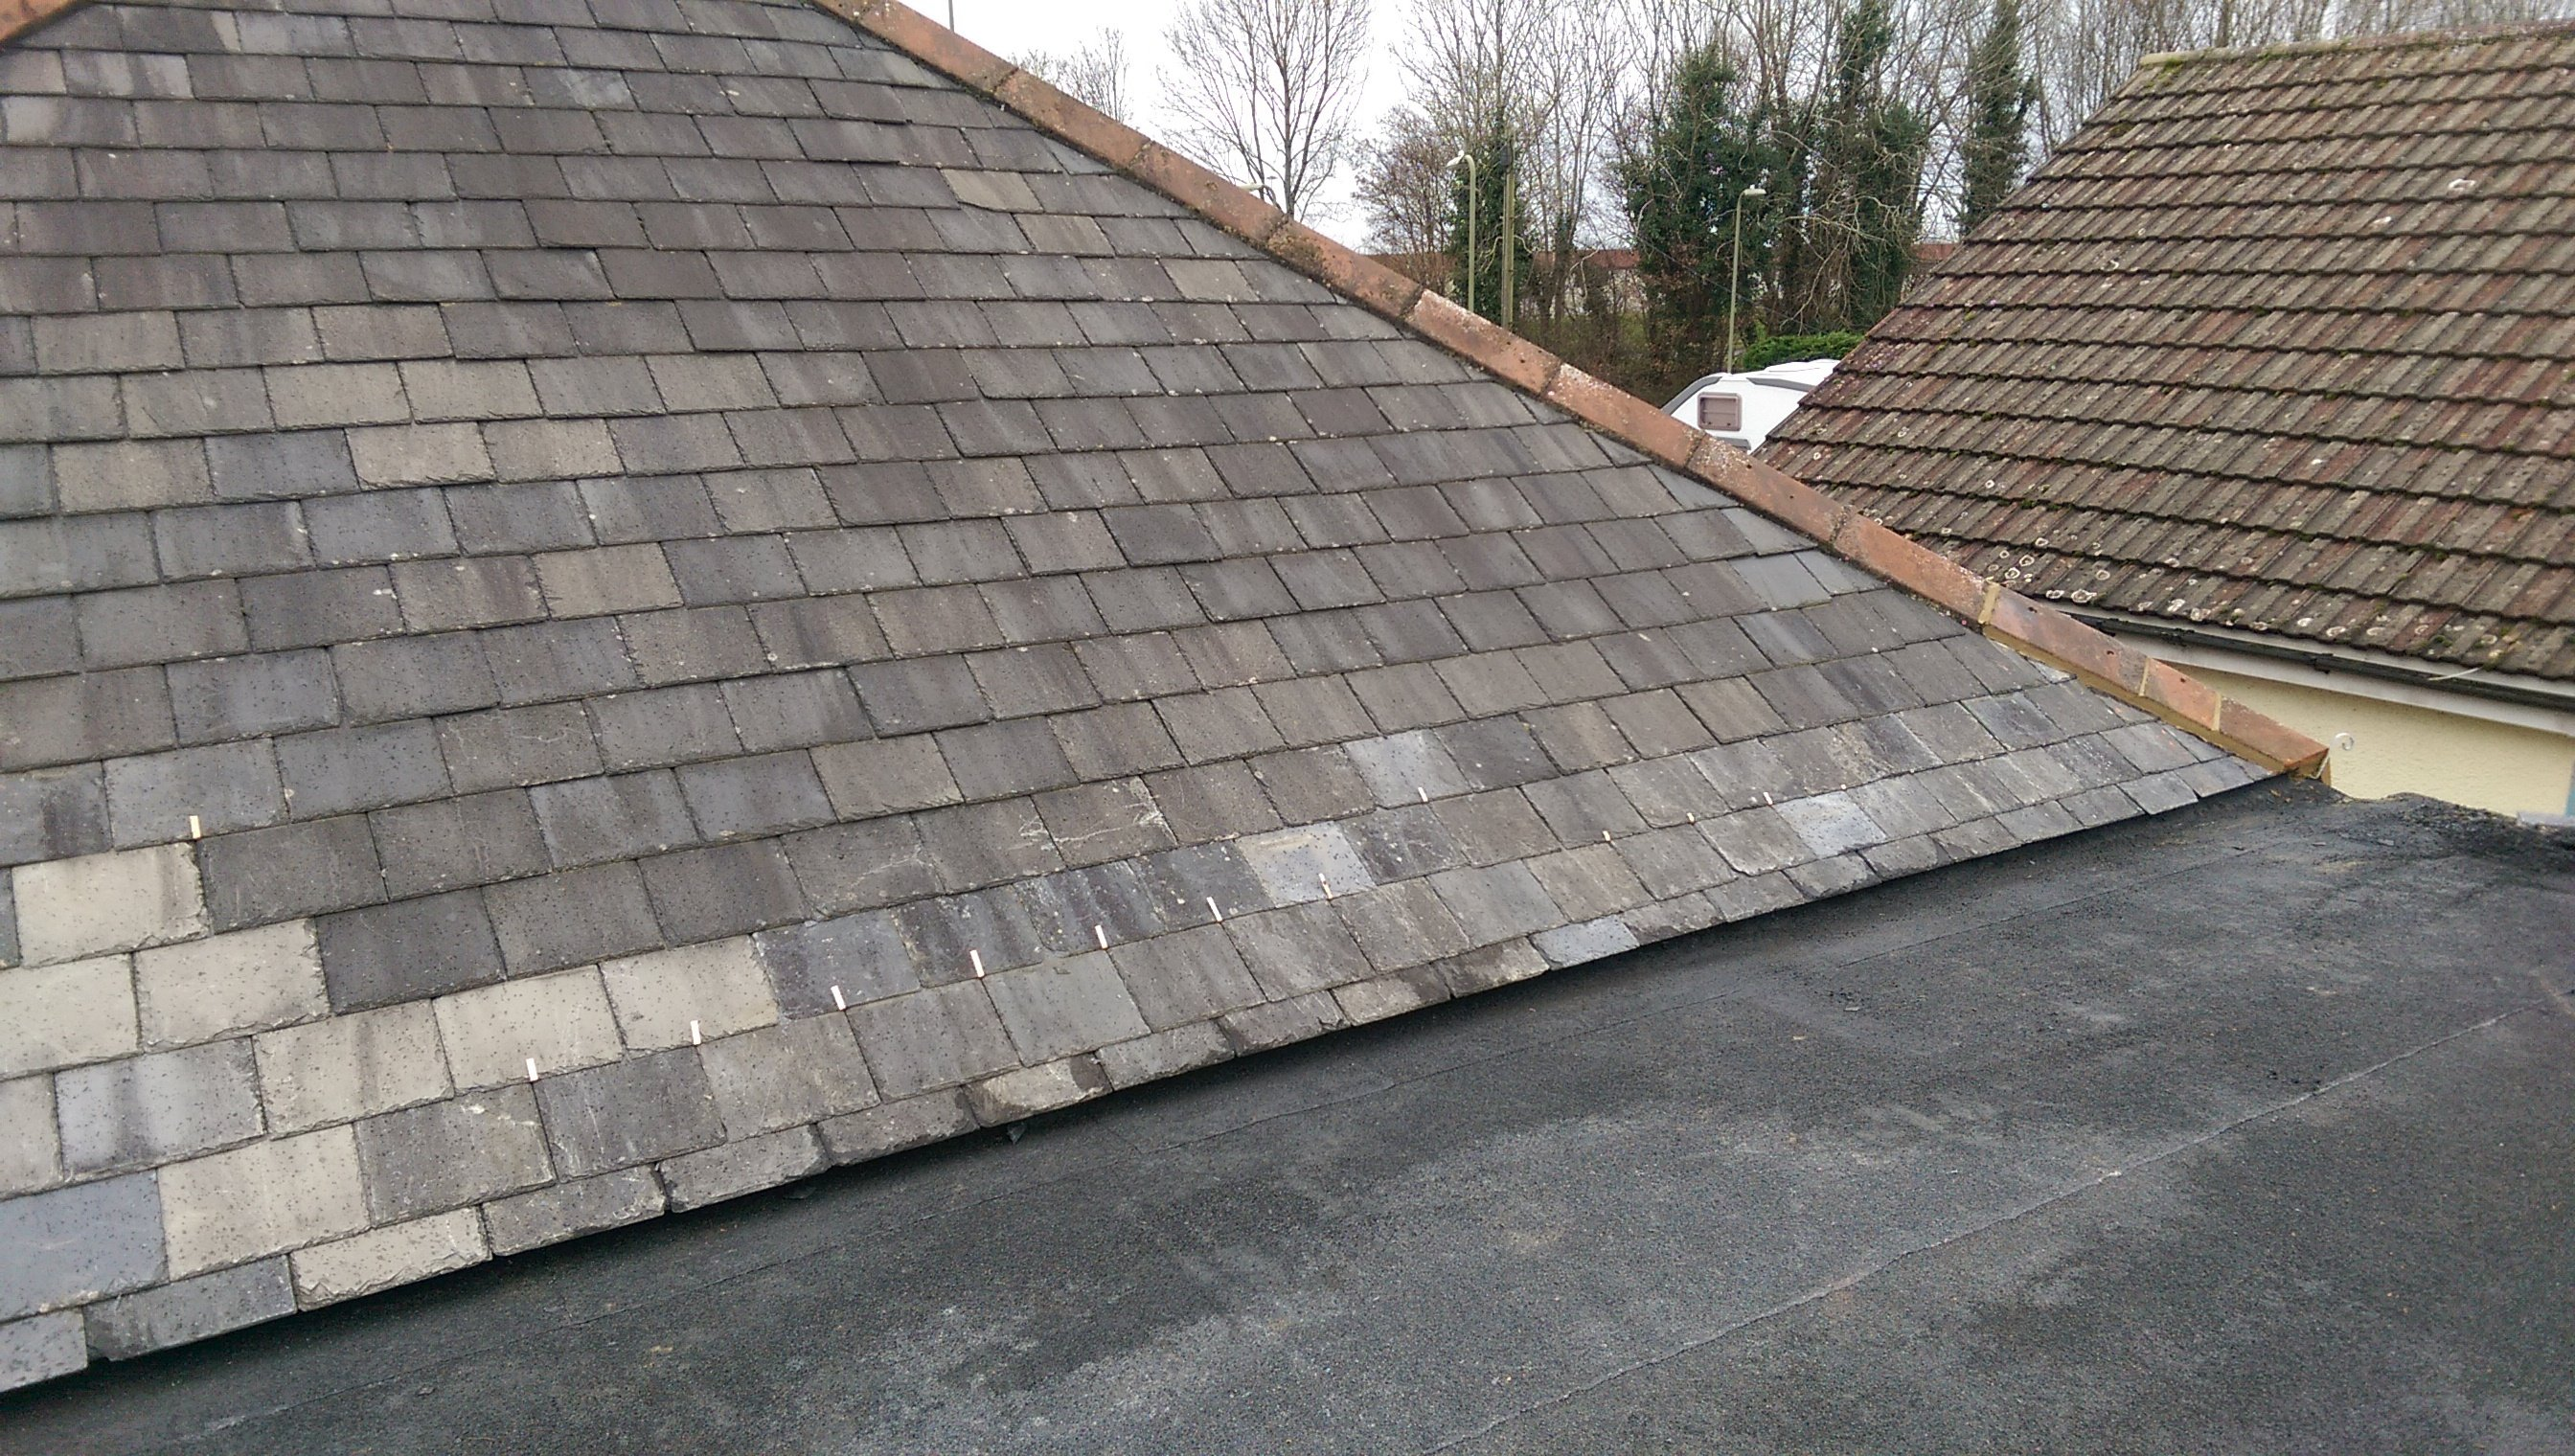 A tiled roof